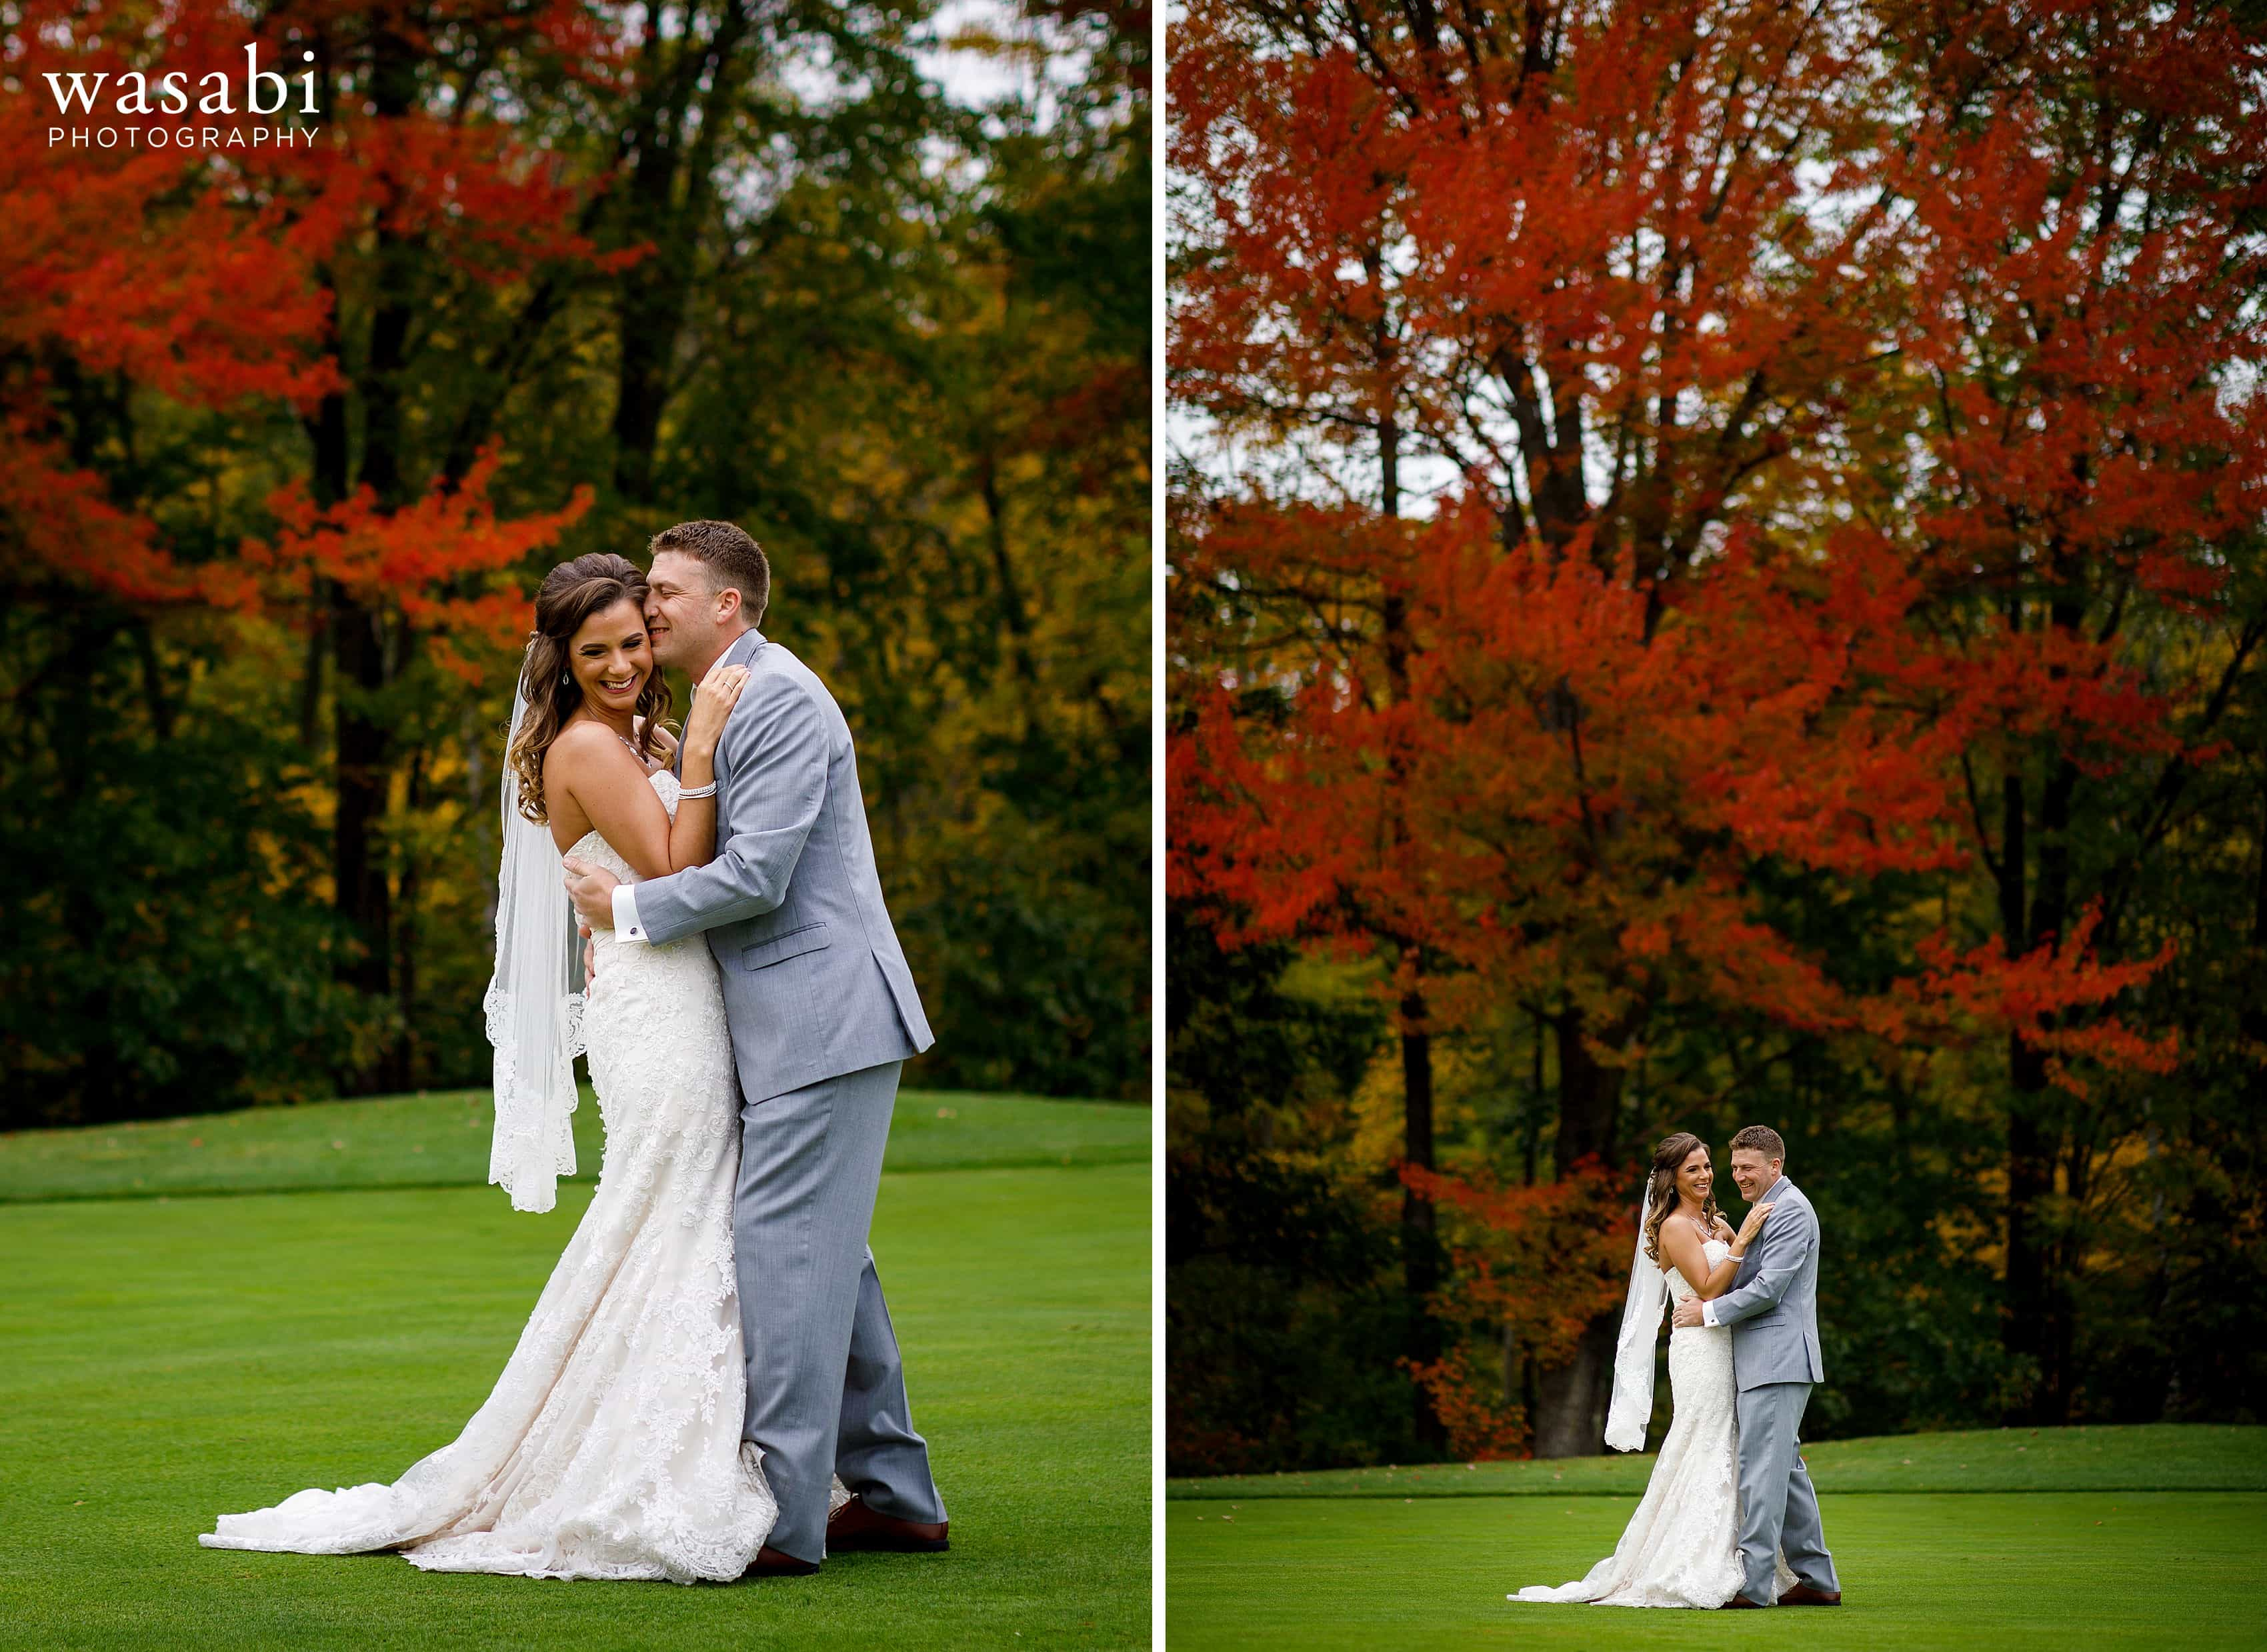 Bride and groom pose for portraits in front of fall color red trees at Buck's Run Golf Club in Mount Pleasant, Michigan.